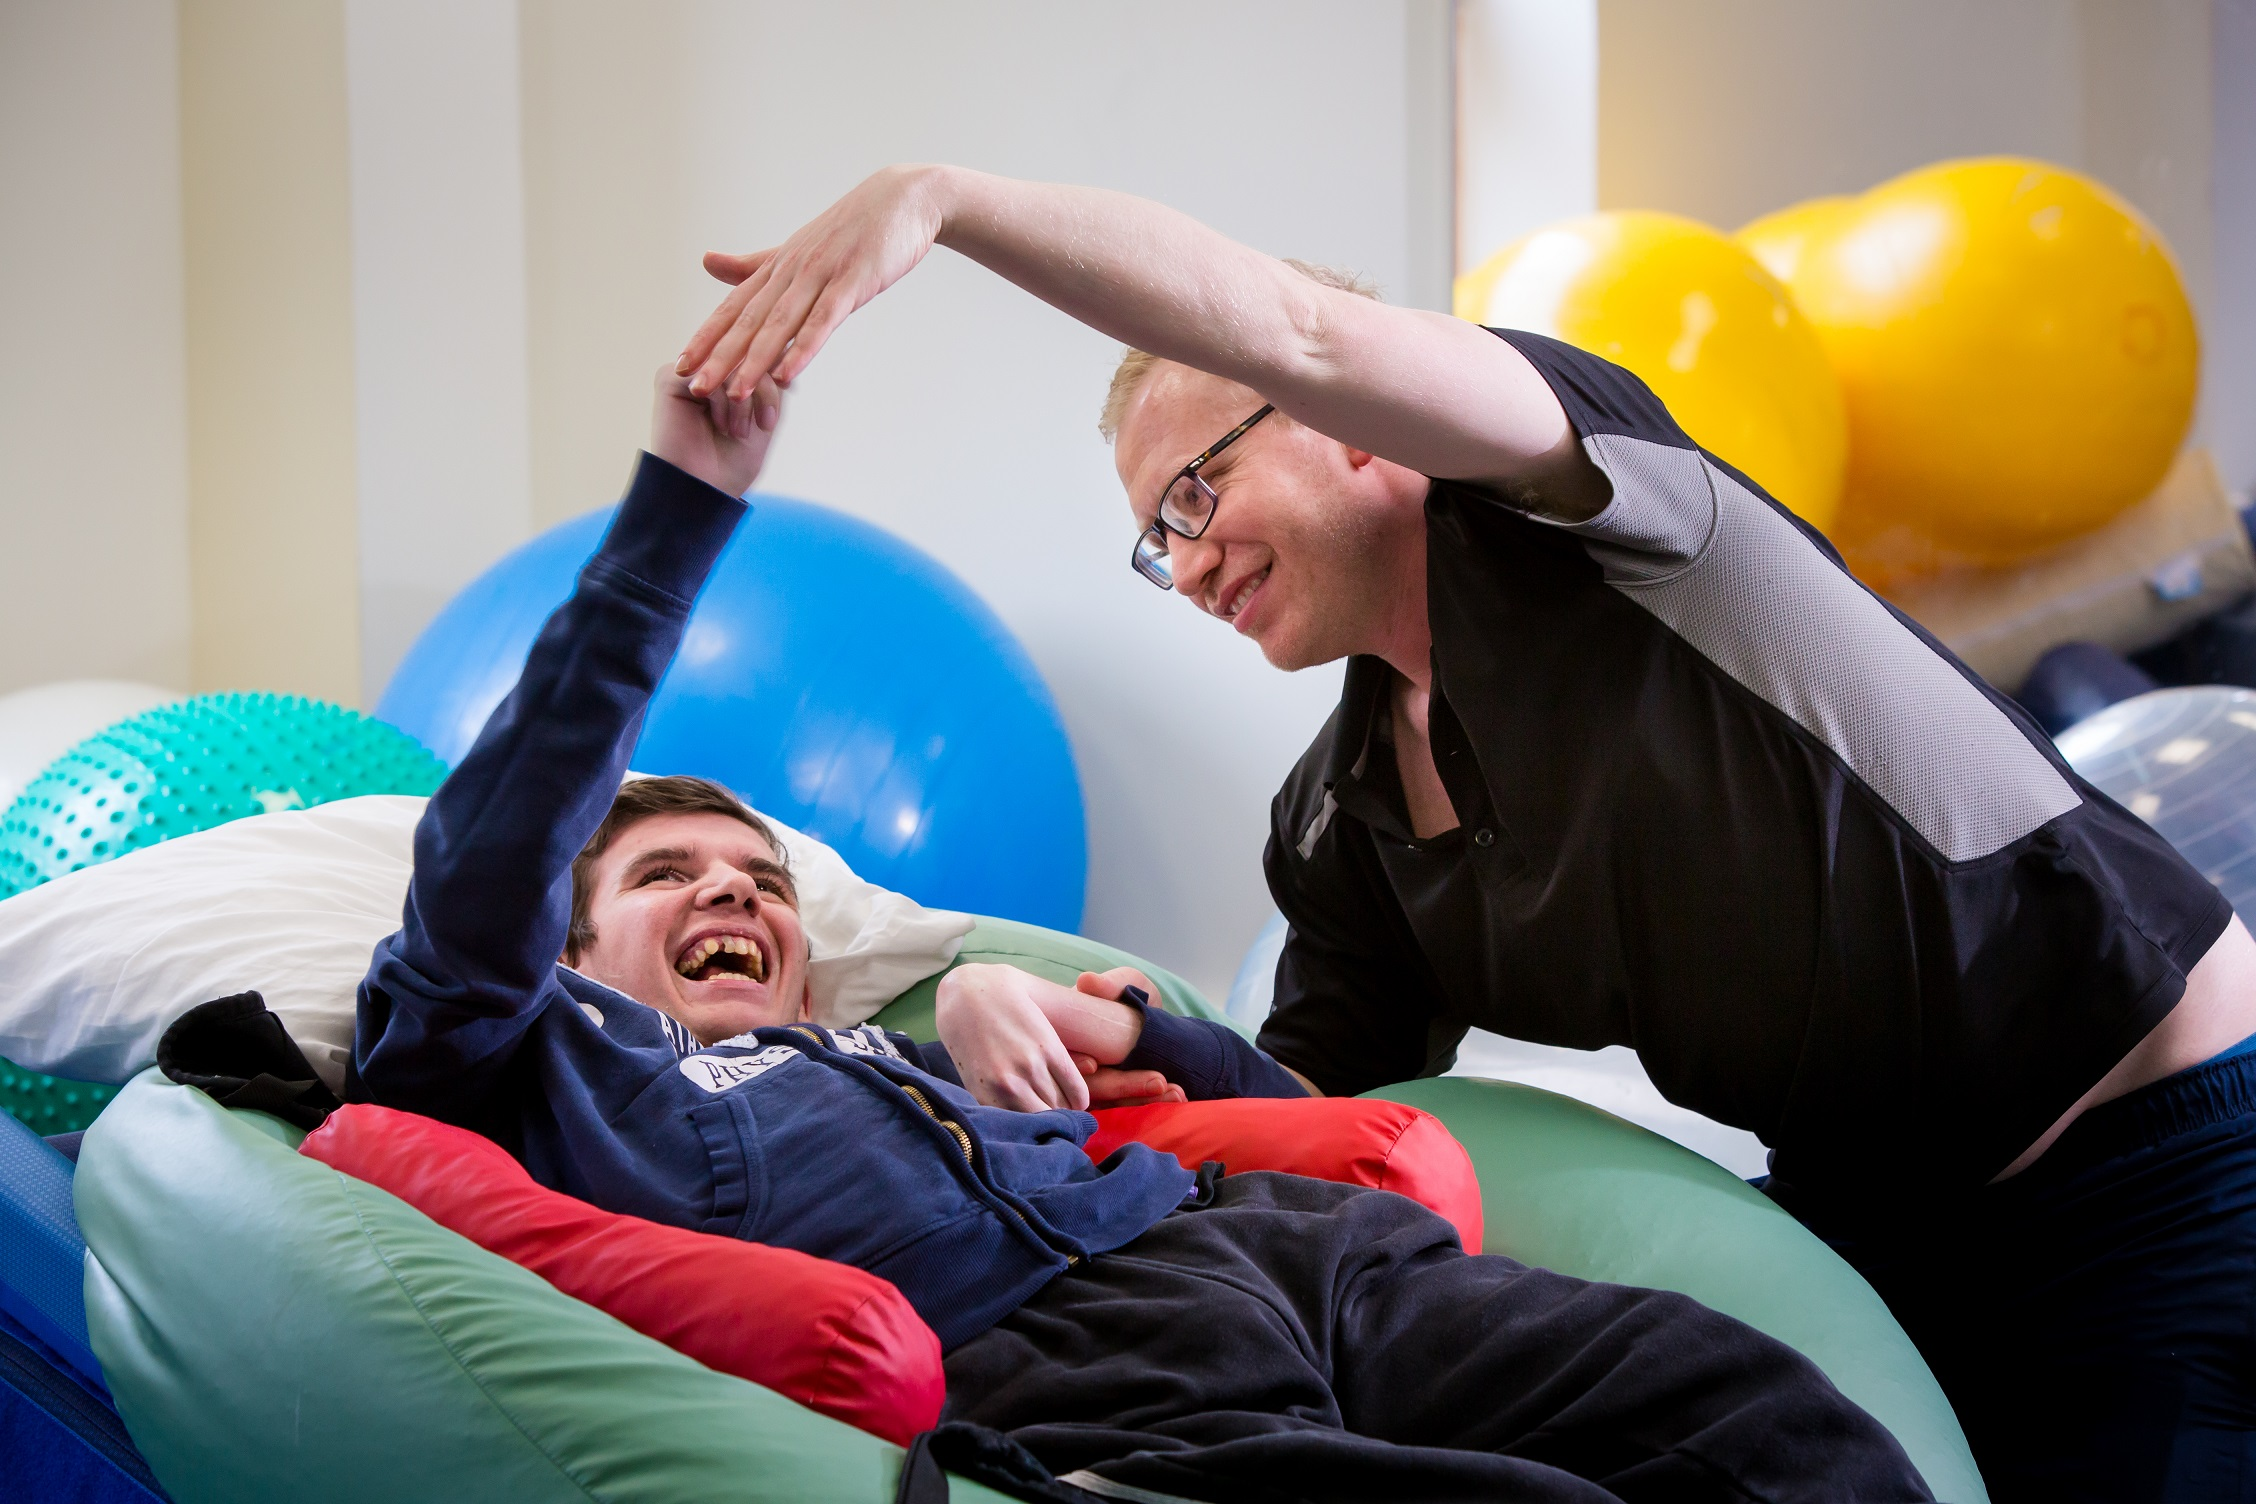 A student having a physiotherapy session raising his arm above his head